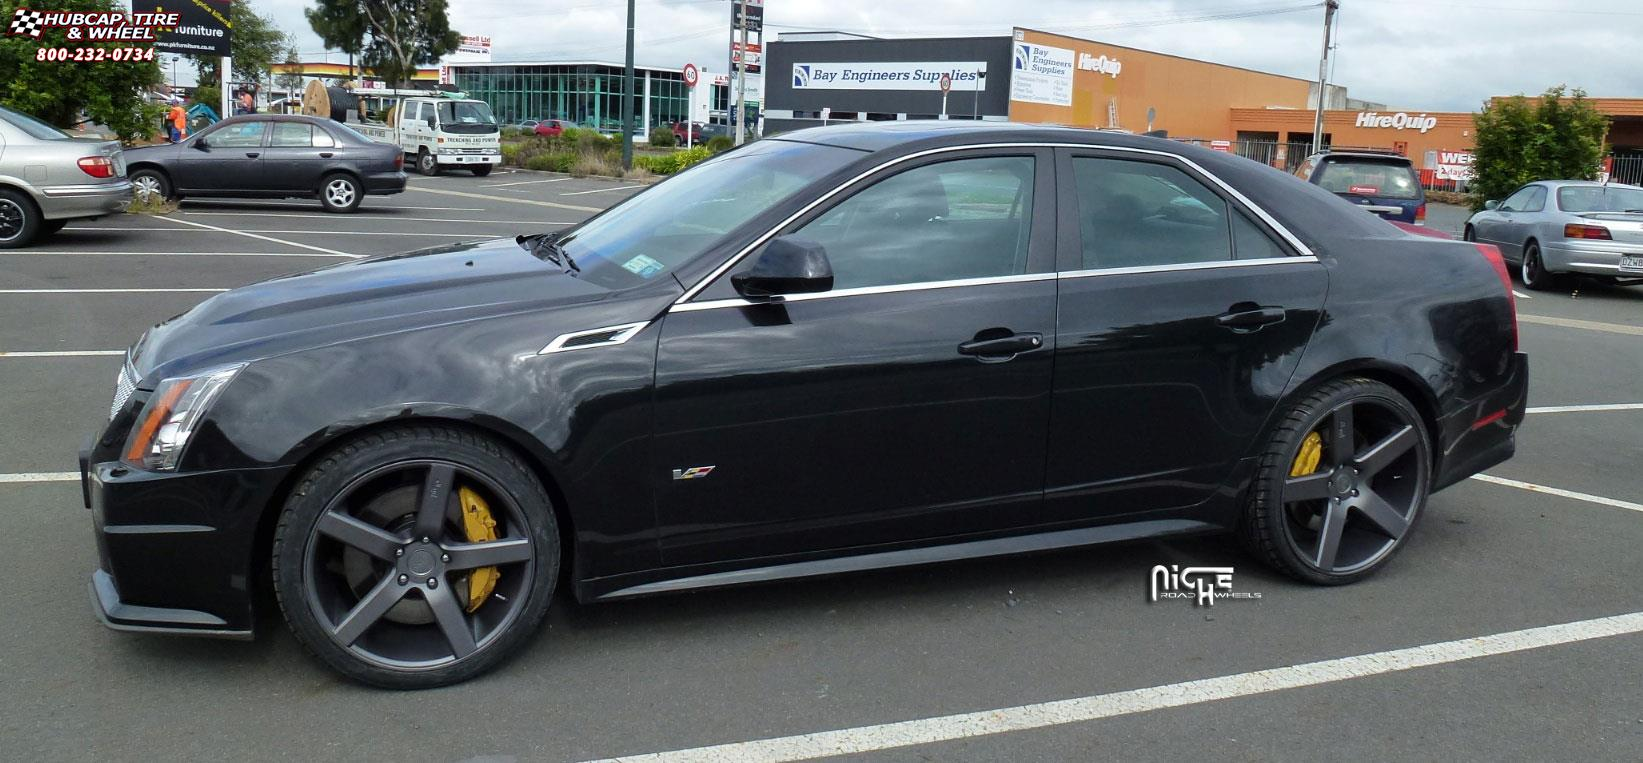 2013 Honda Accord Sport Tire Size >> Cadillac CTS Niche Milan - M134 Wheels Black & Machined with Dark Tint